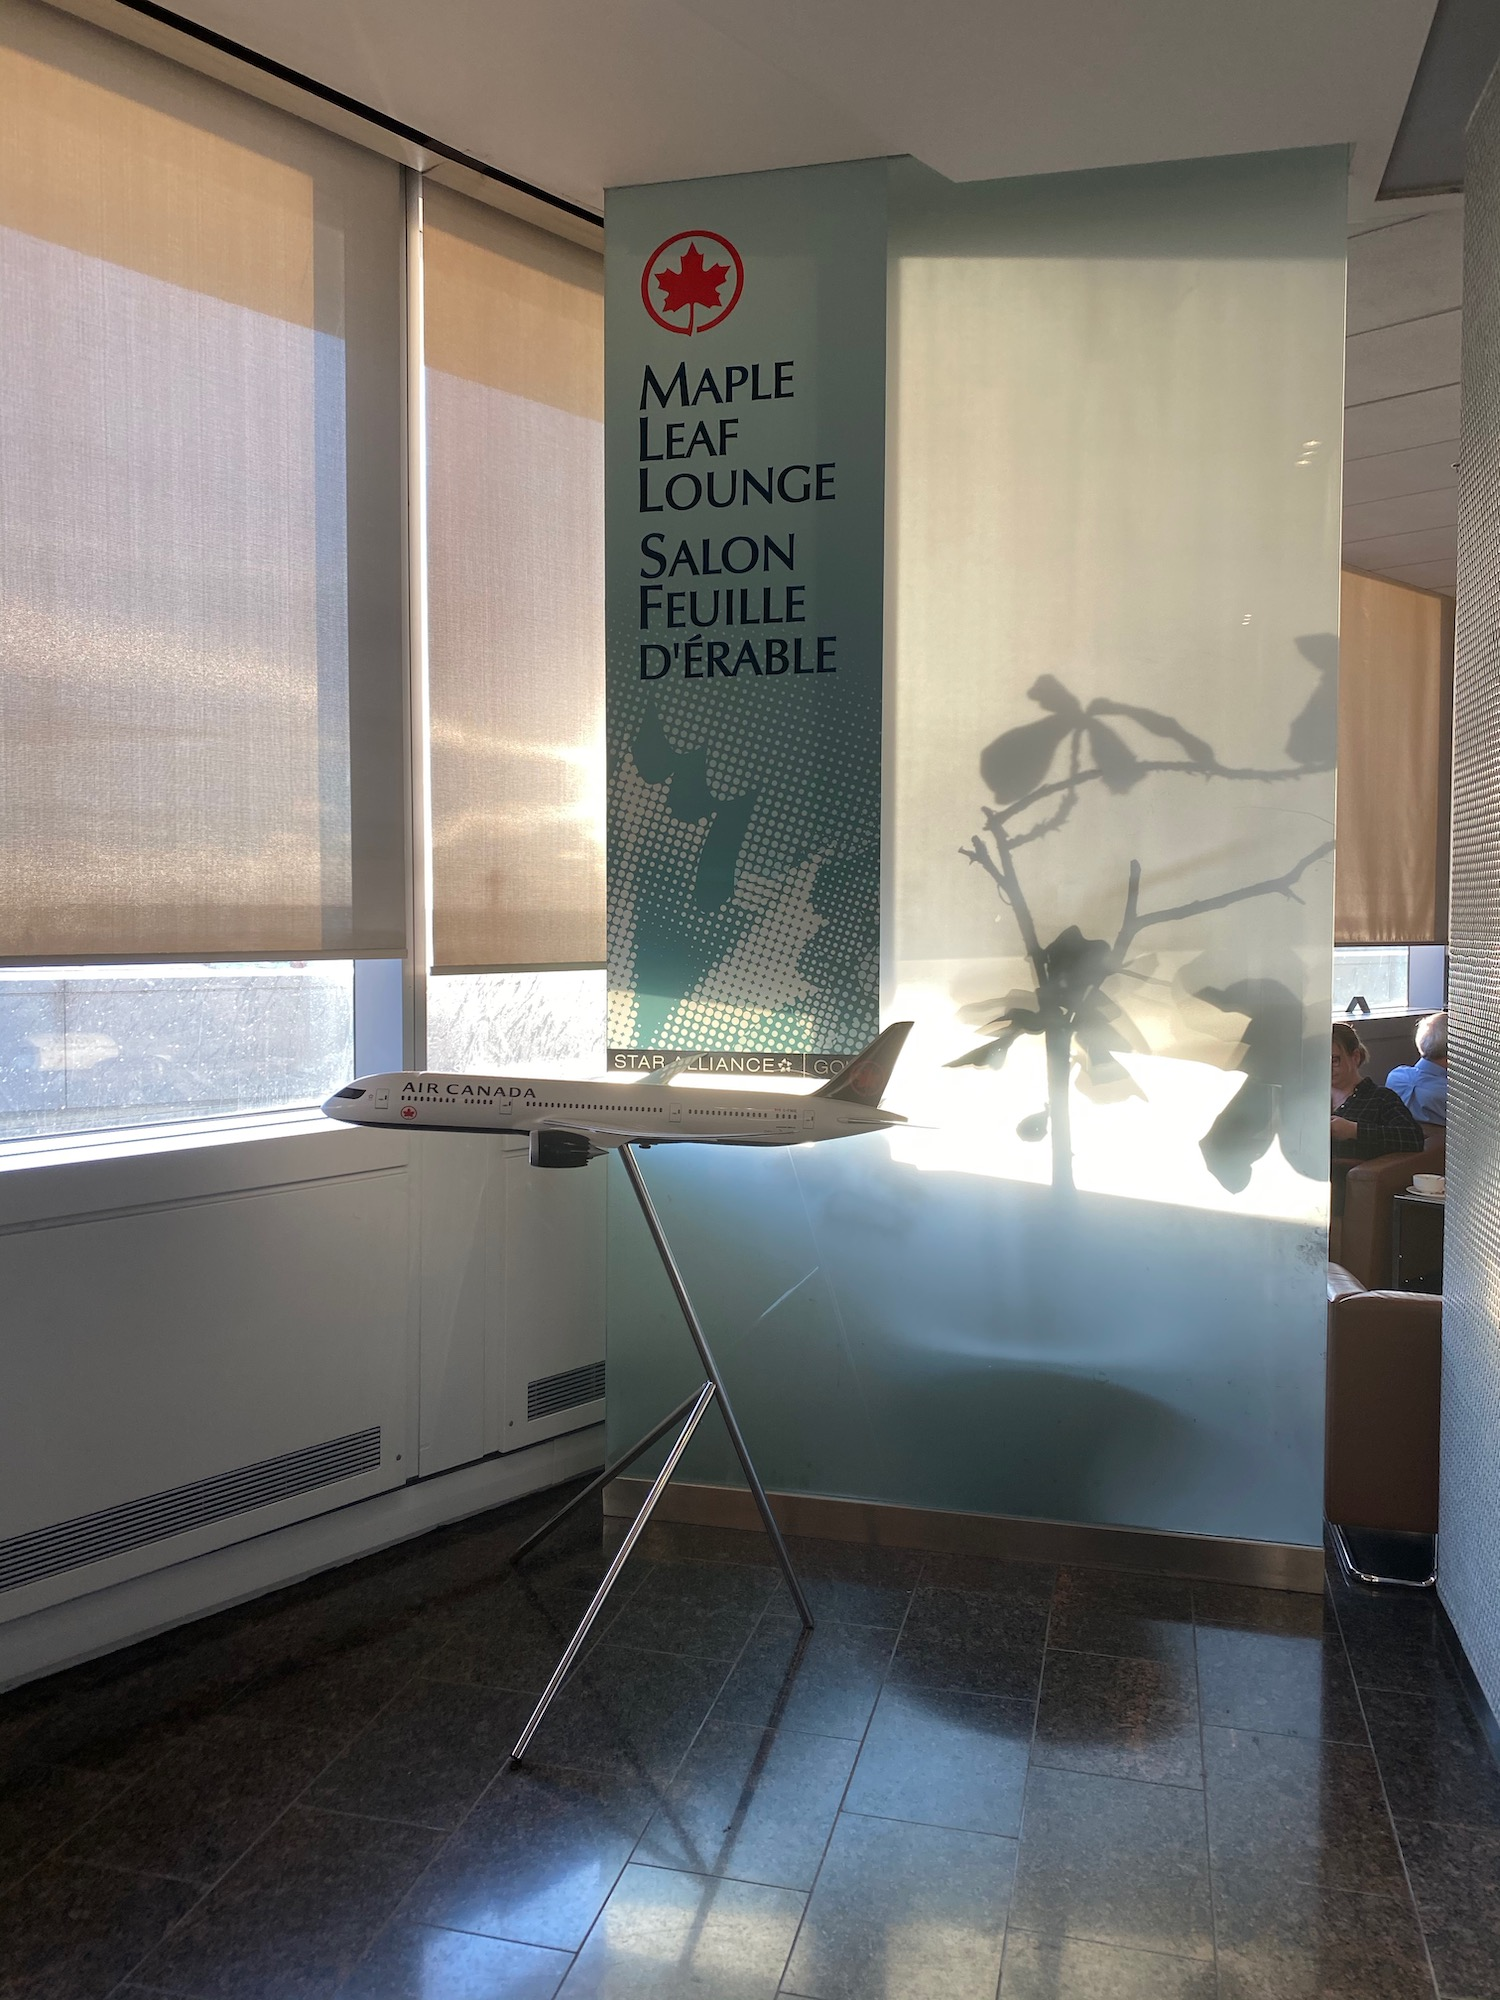 Air Canada Transborder Maple Leaf Lounge Toronto Review